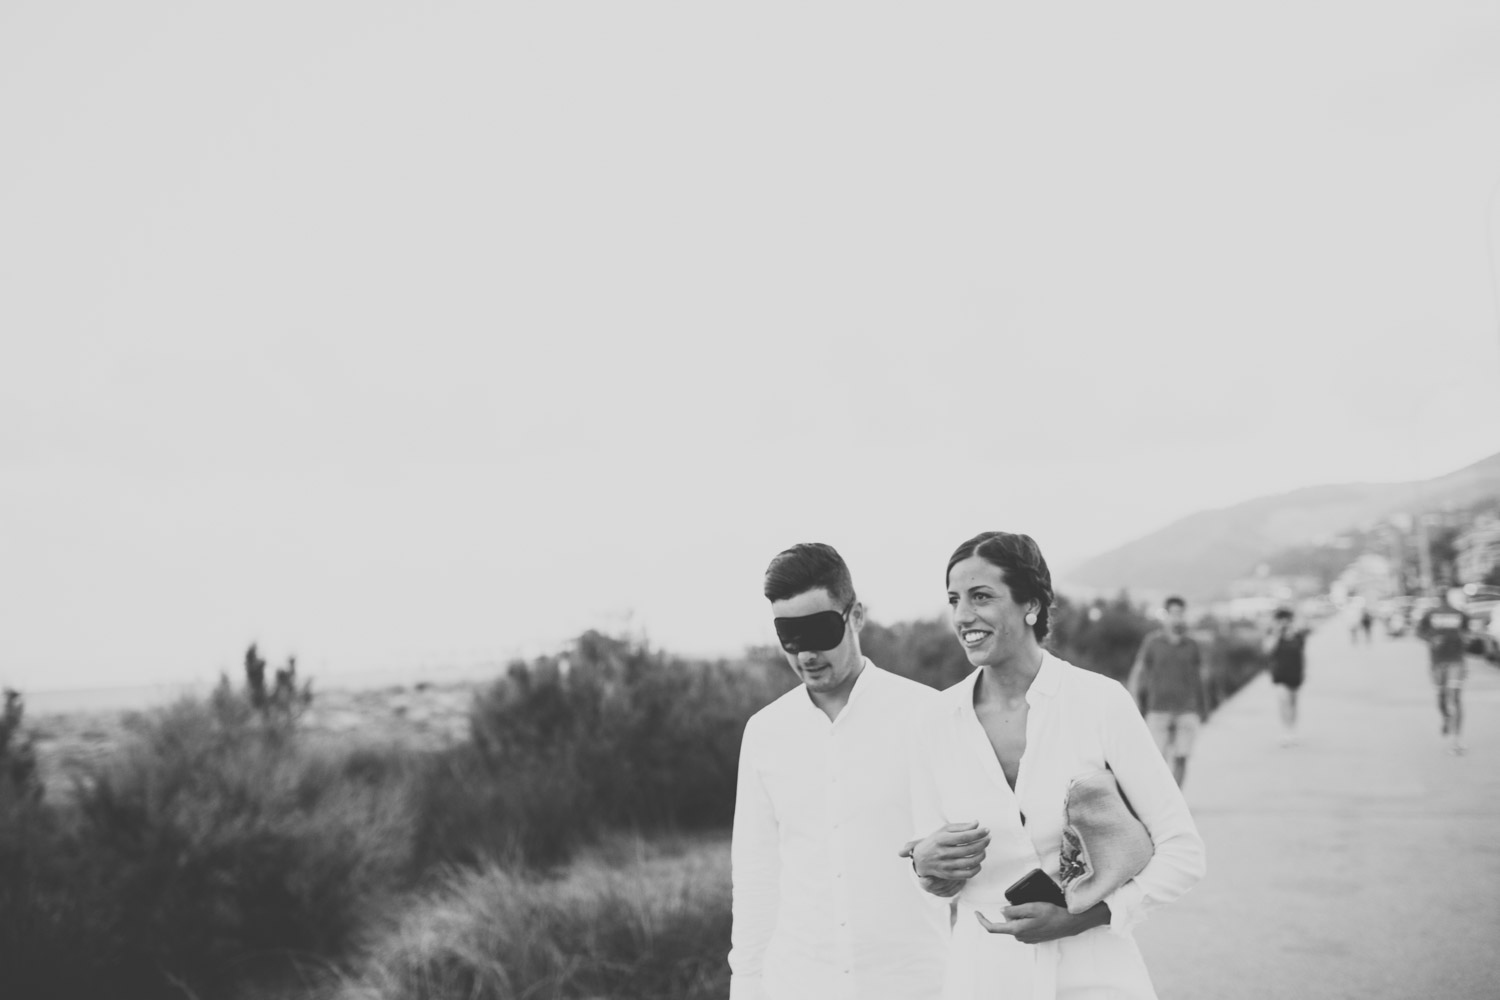 hondo_studio_wedding_photography_Ester_Mario_Pedida_01